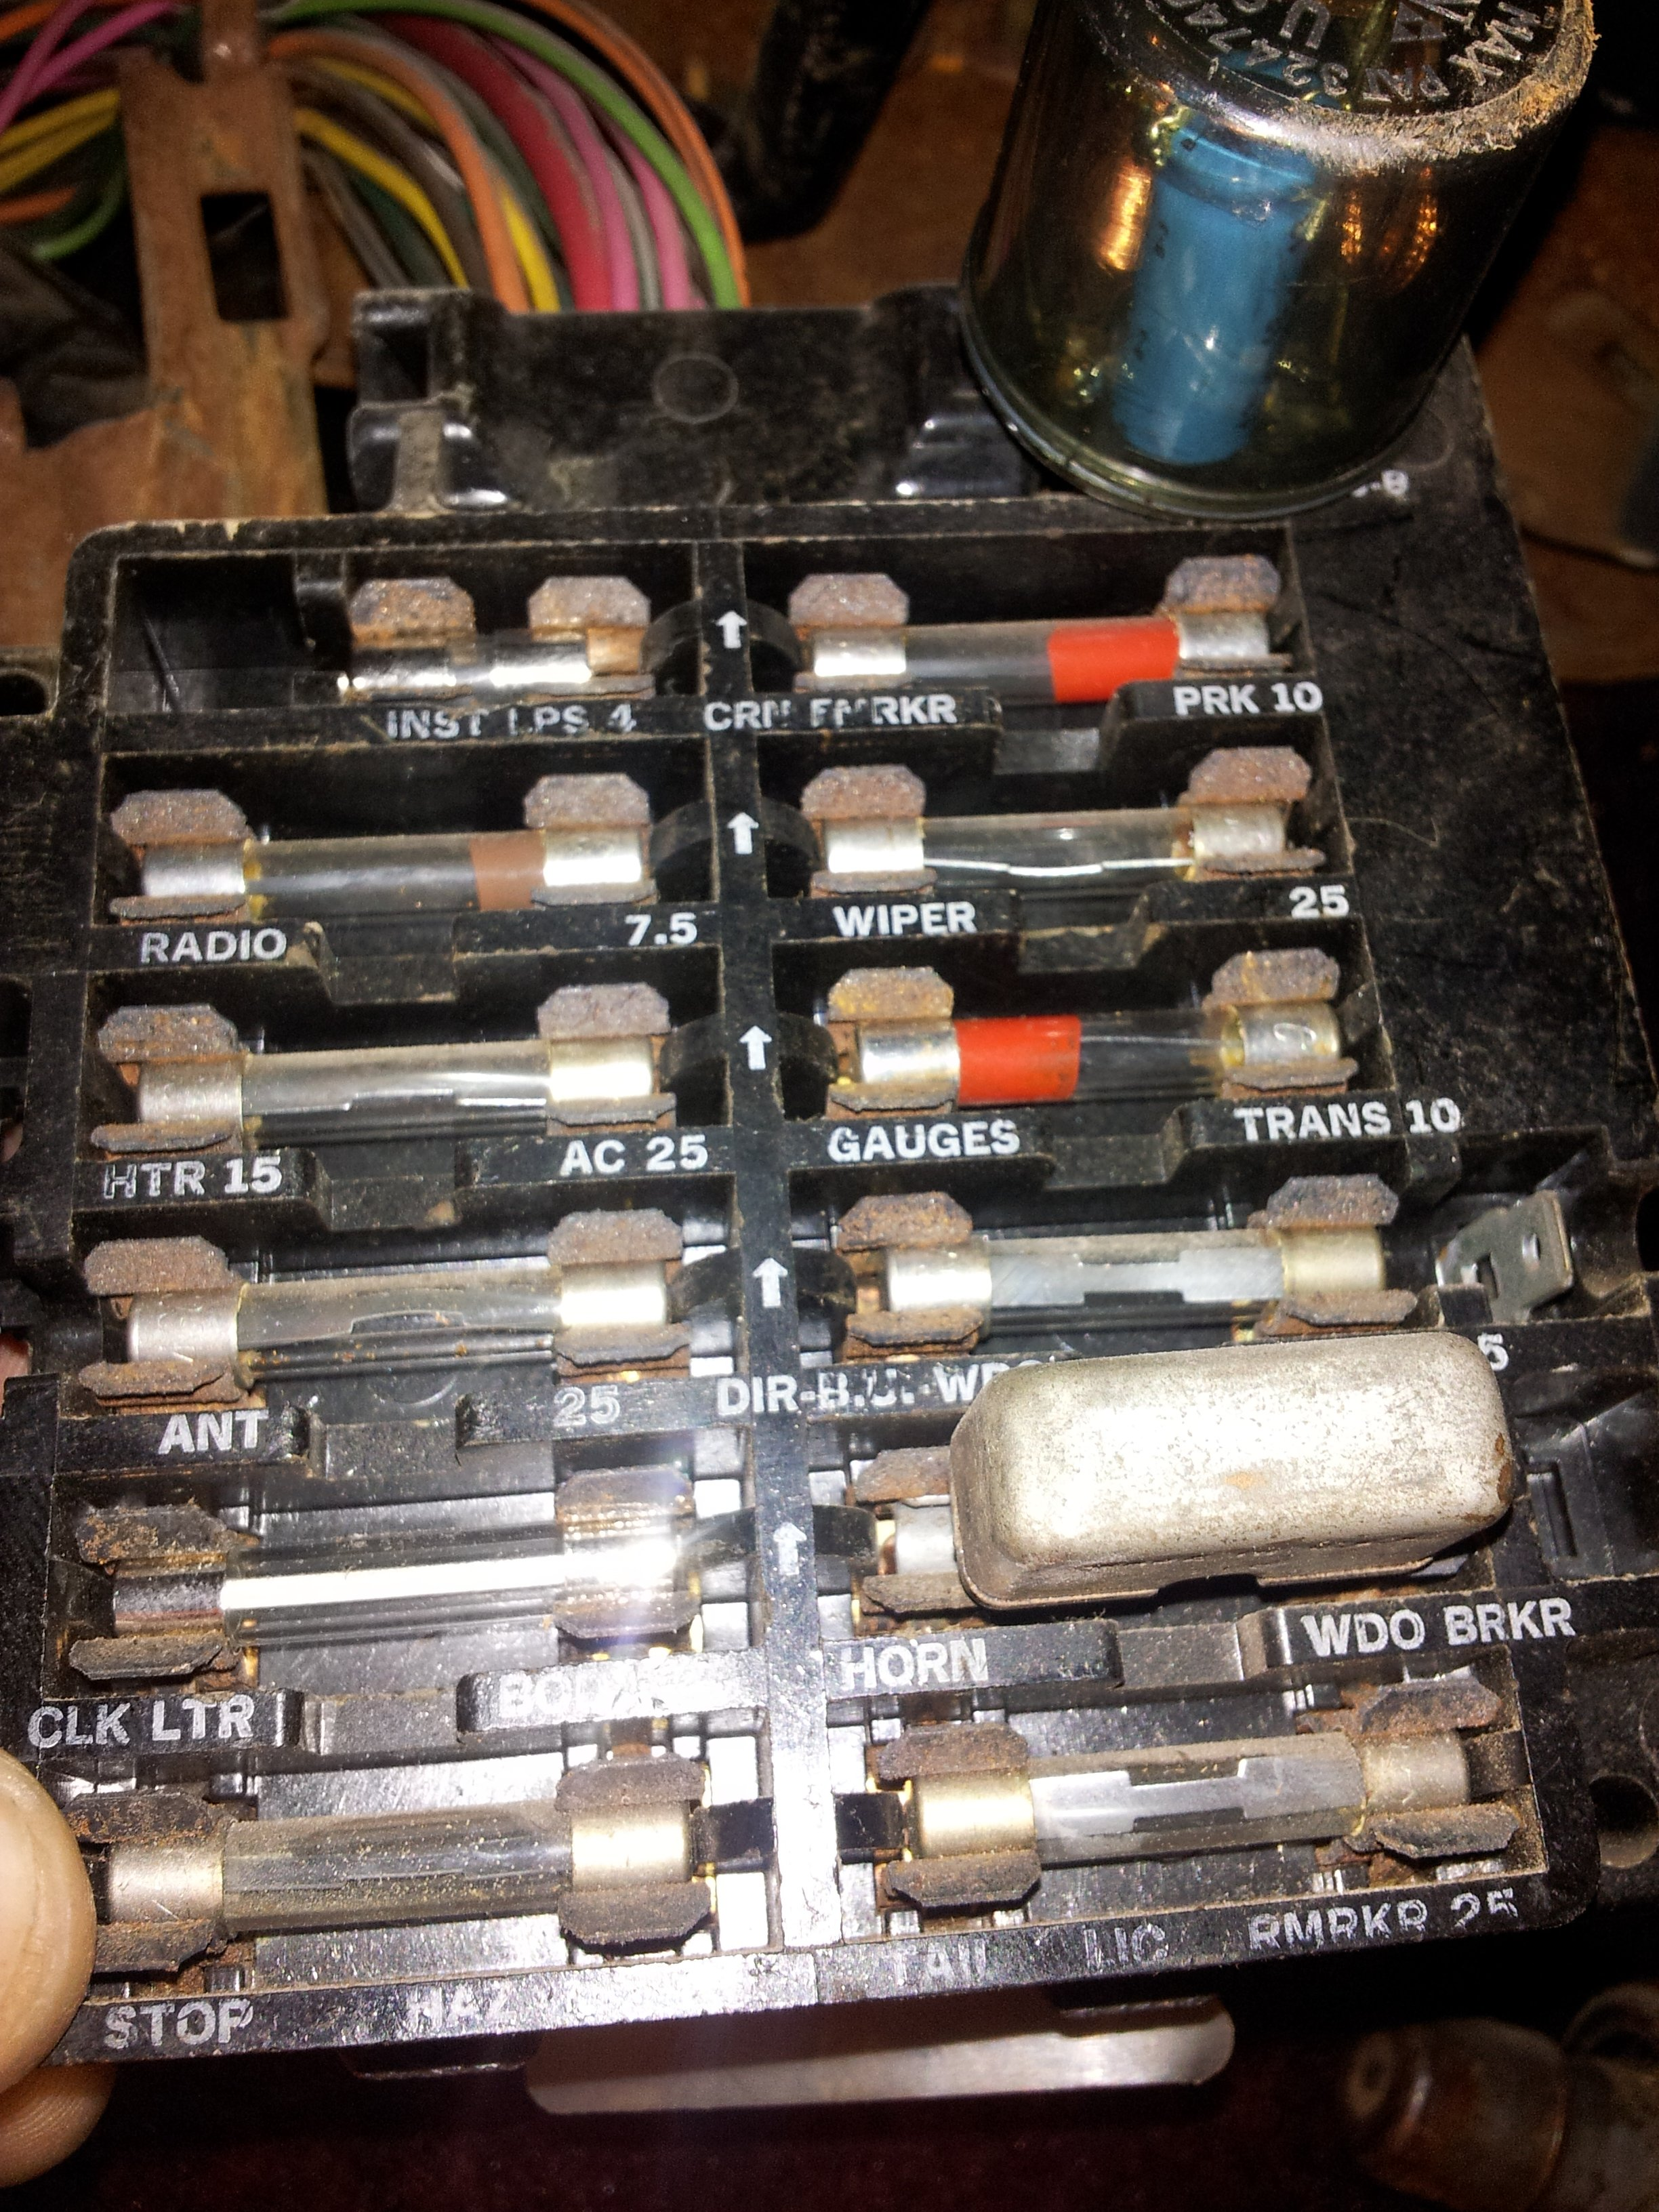 71 nova fuse box 68 nova fuse box diagram my question is i have a 1968 cadillac convertible. my ...